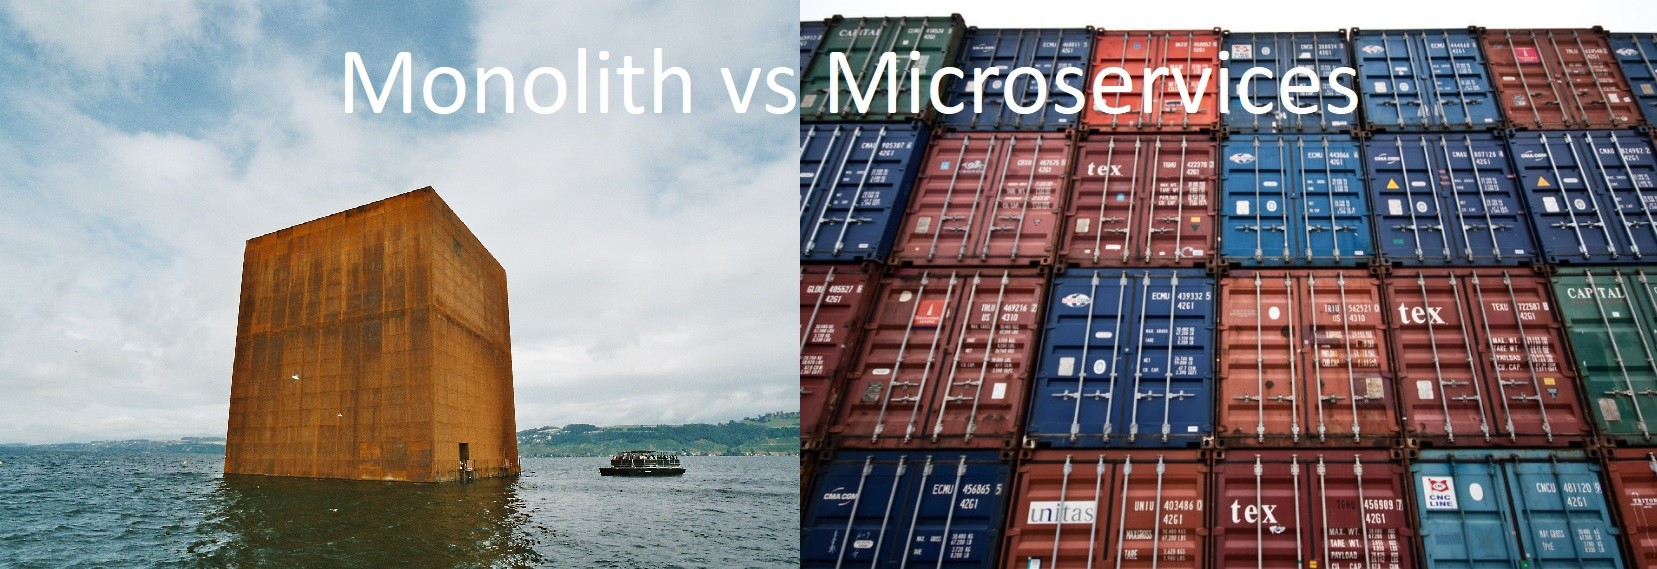 Monolith or Microservices?